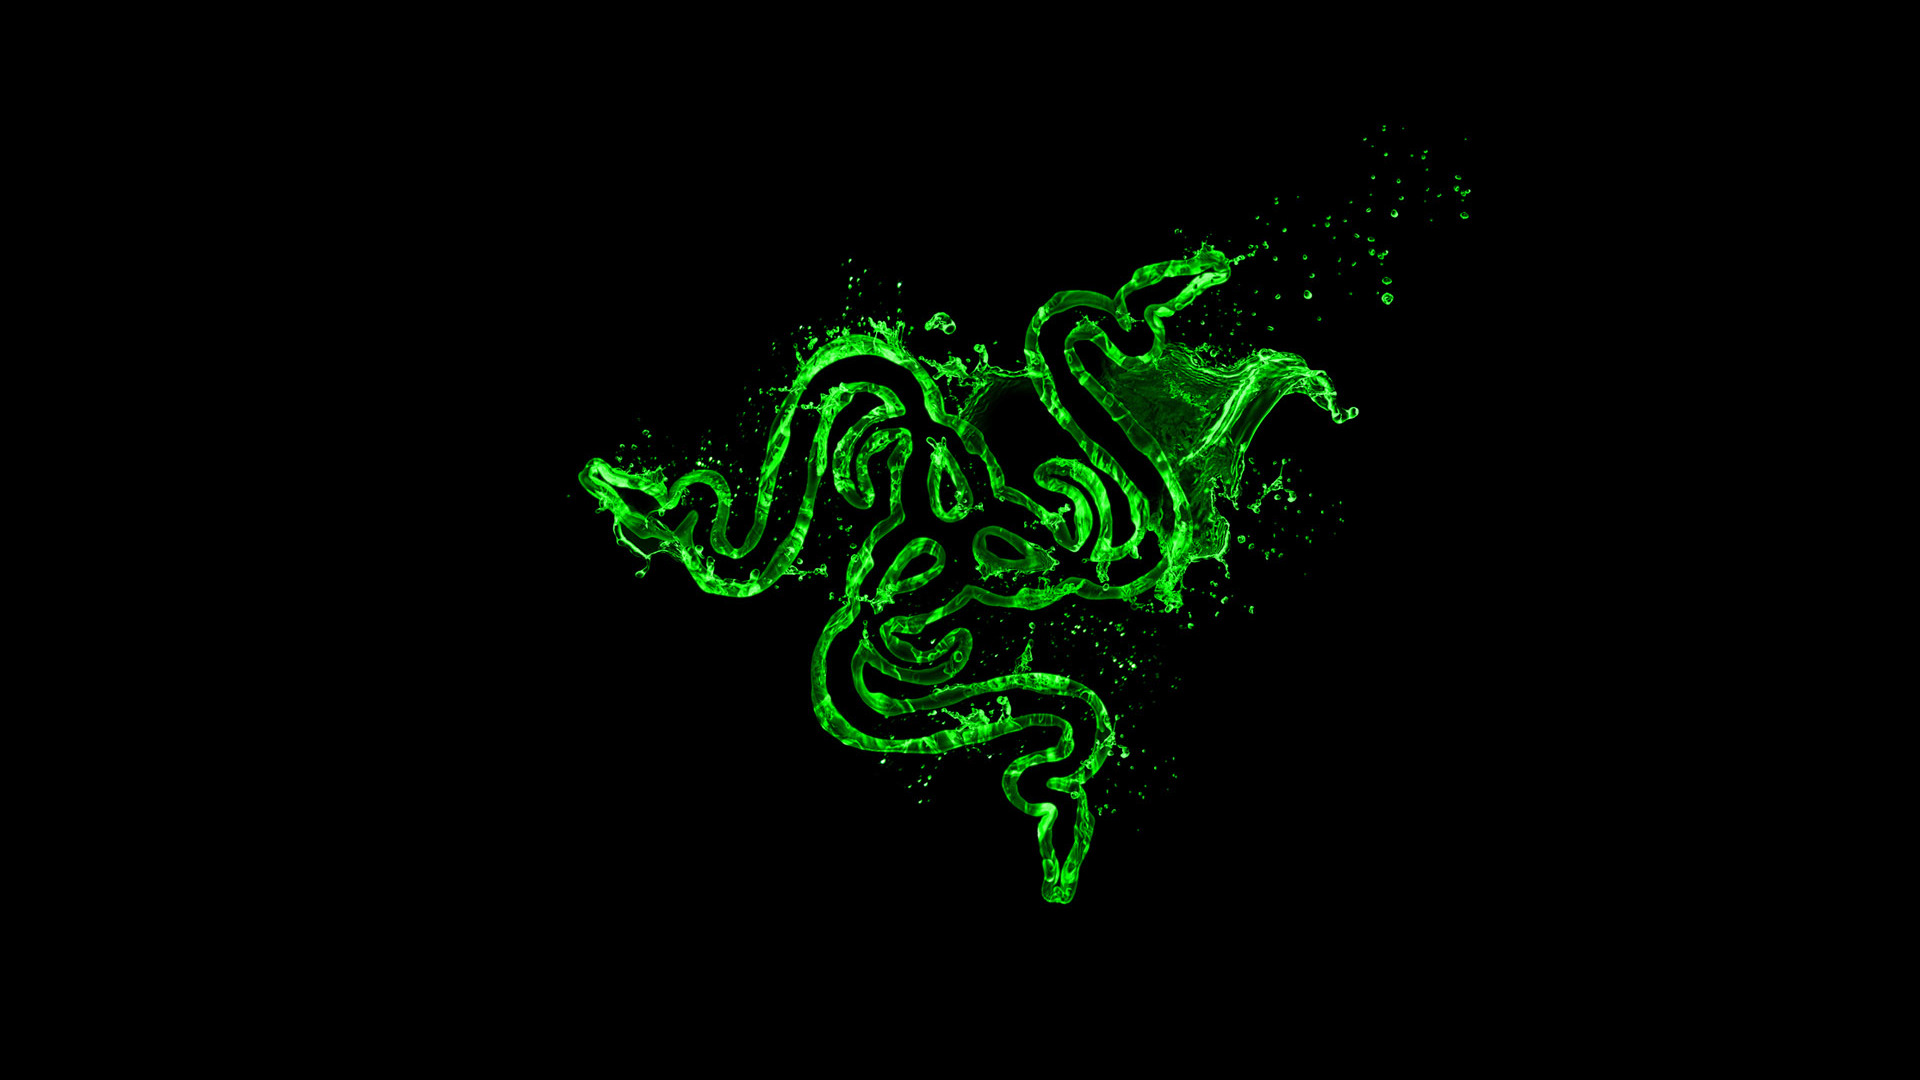 green razer logo wallpaper